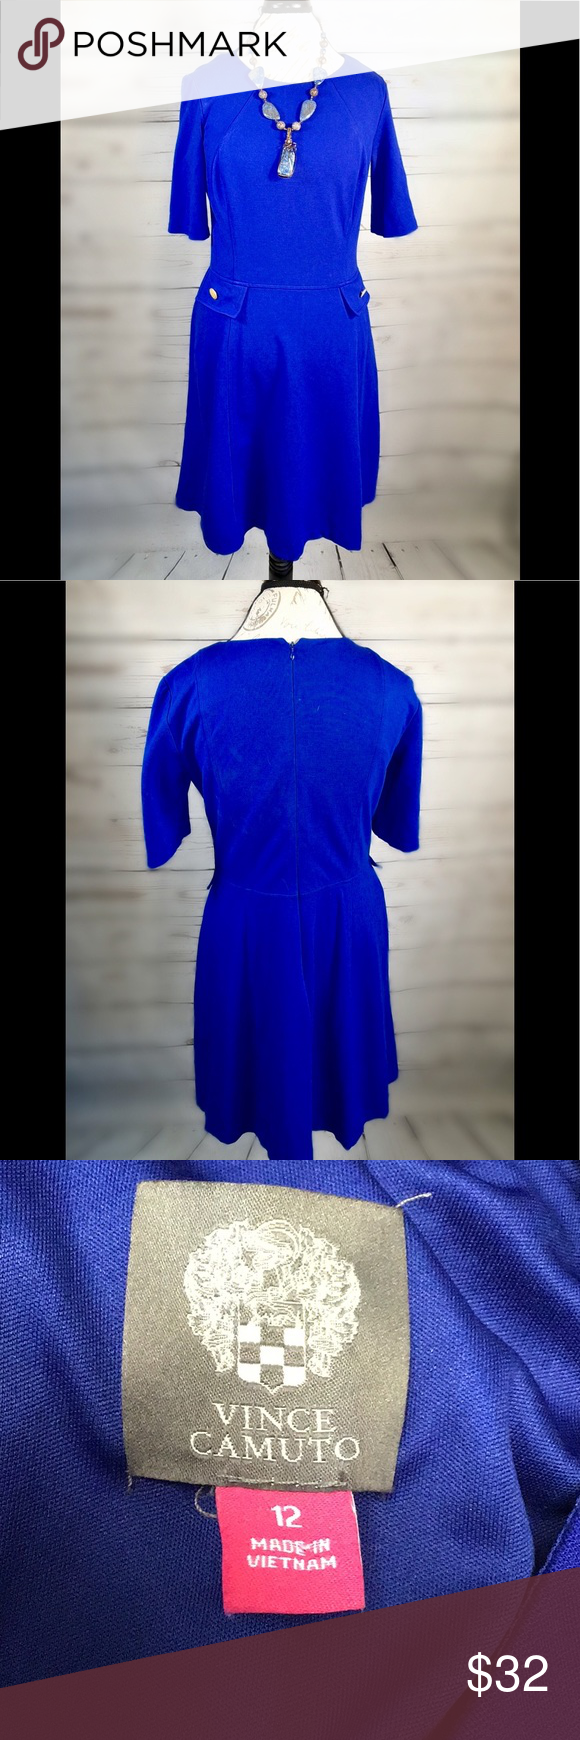 Vince Camuto Work Party Lux Comfy Stretch Royal Blue Dresses Royal Blue Dress Work Party [ 1740 x 580 Pixel ]